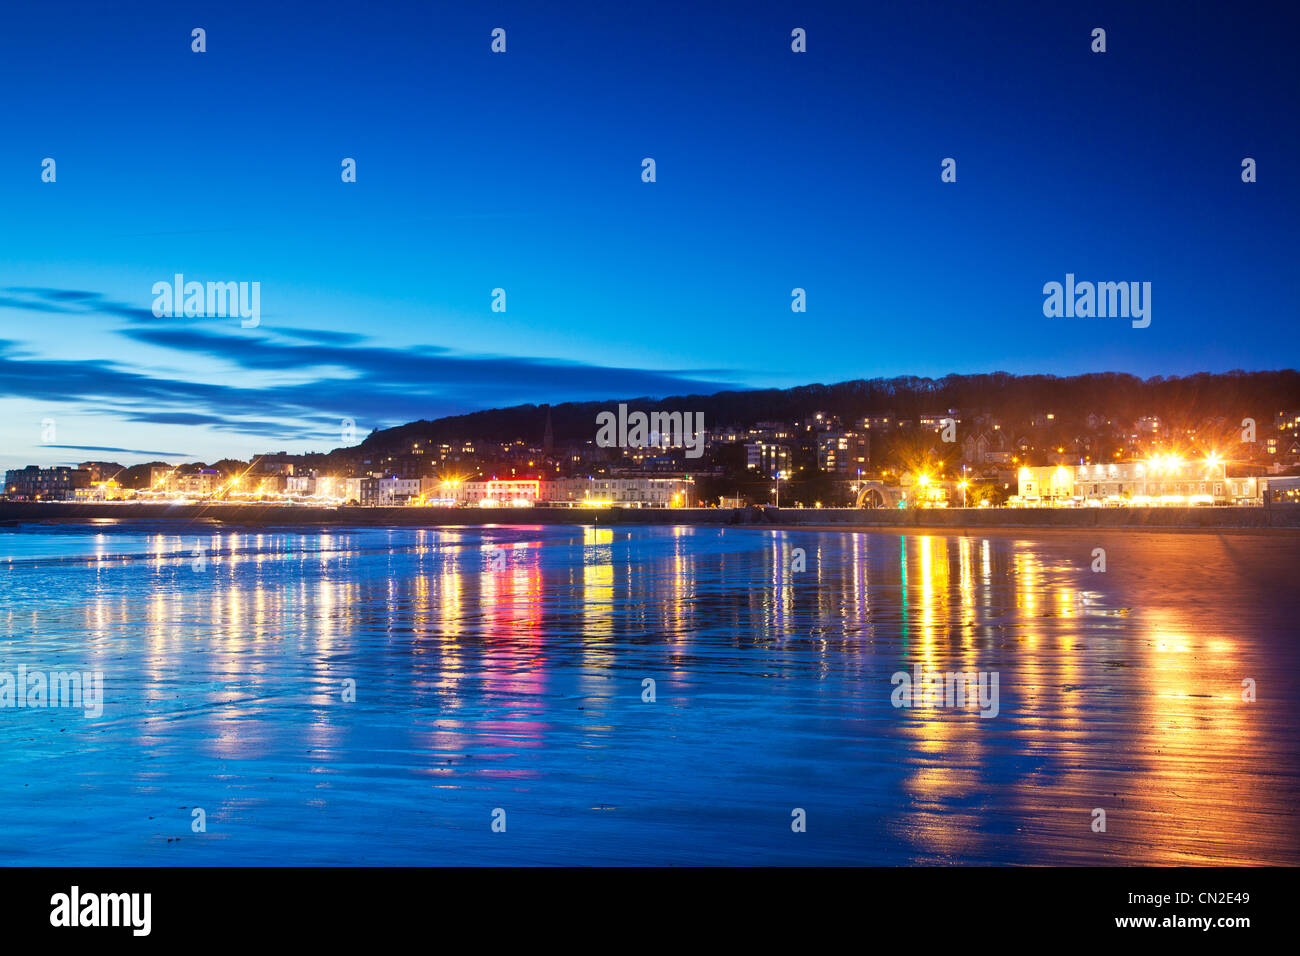 Twilight over Weston-Super-Mare, Somerset, England, UK with the lights of the town reflected in the wet sand at - Stock Image